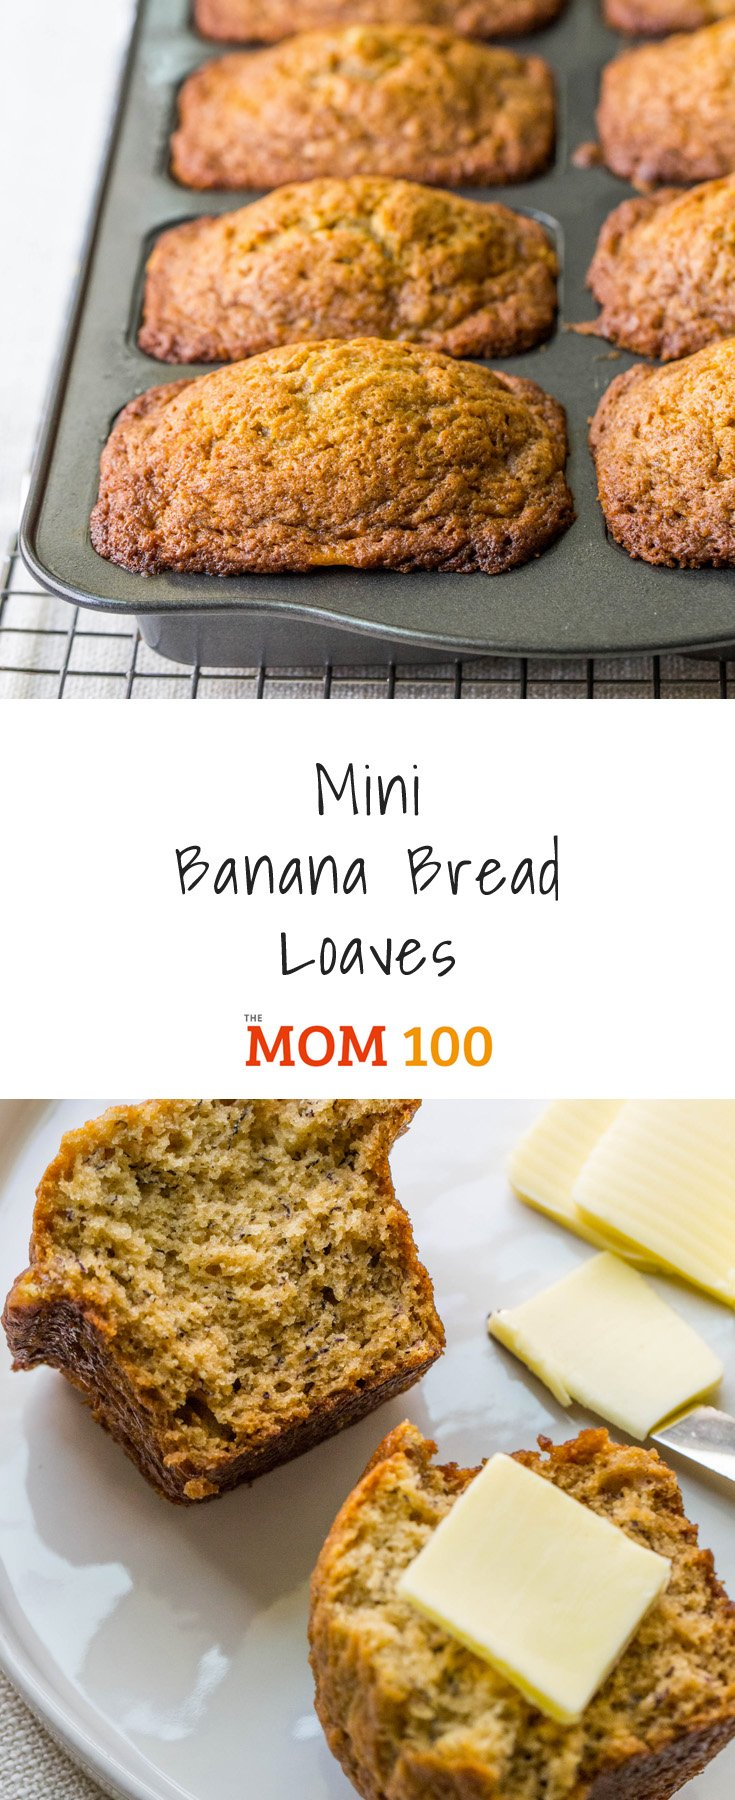 Mini banana bread loaves recipe the mom 100 the mom 100 the cutest mini banana bread loaves cute as a button and perfect for sharing forumfinder Images